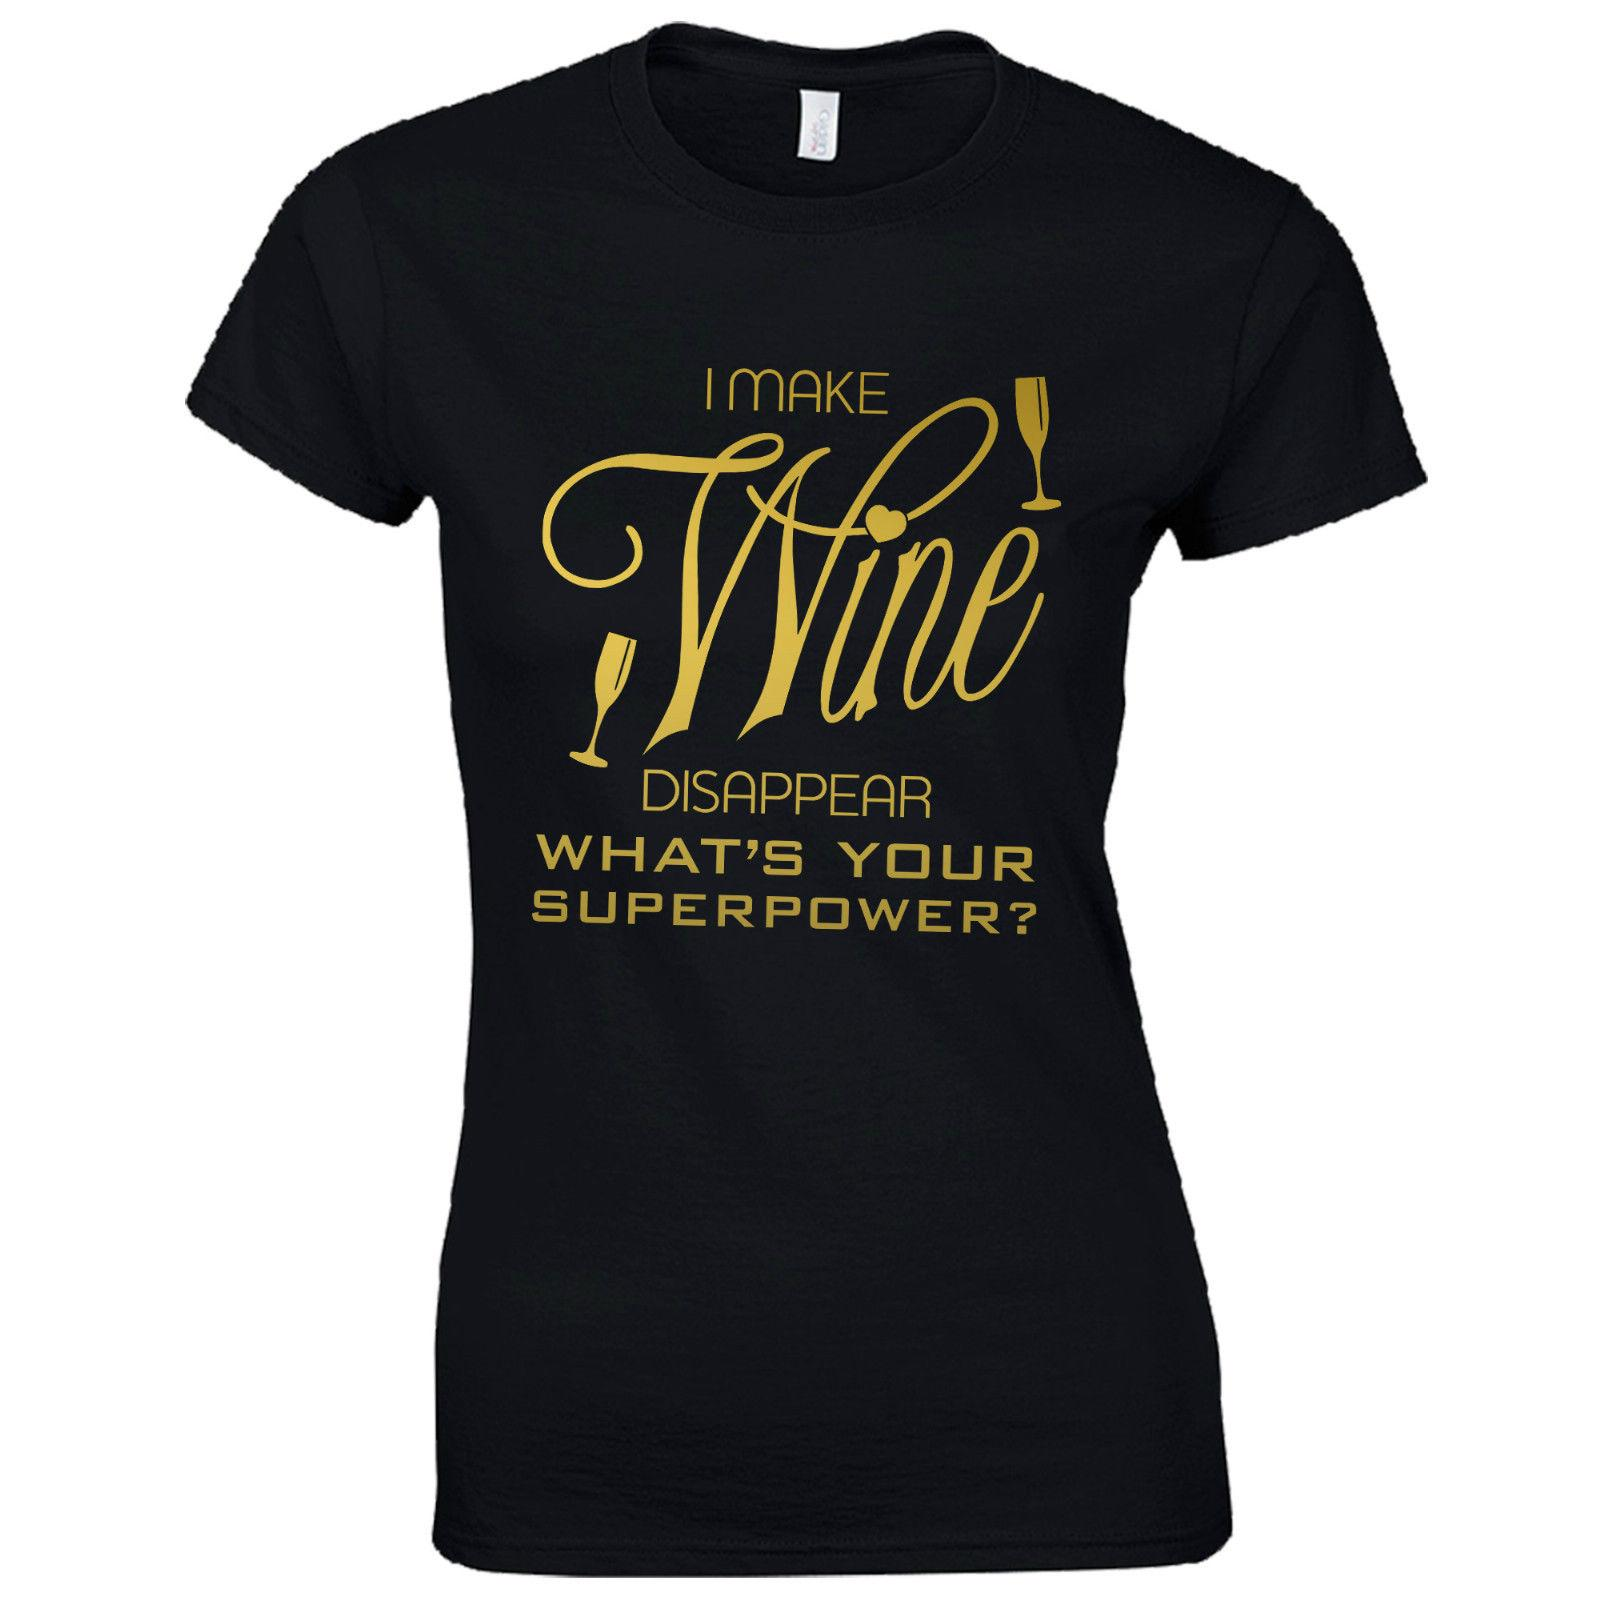 8a6d49fdd18c I Make Wine Disappear Ladies Fitted T-Shirt - Funny Superpower Gift Lady  Top Online with  13.15 Piece on Bangtidyclothing s Store